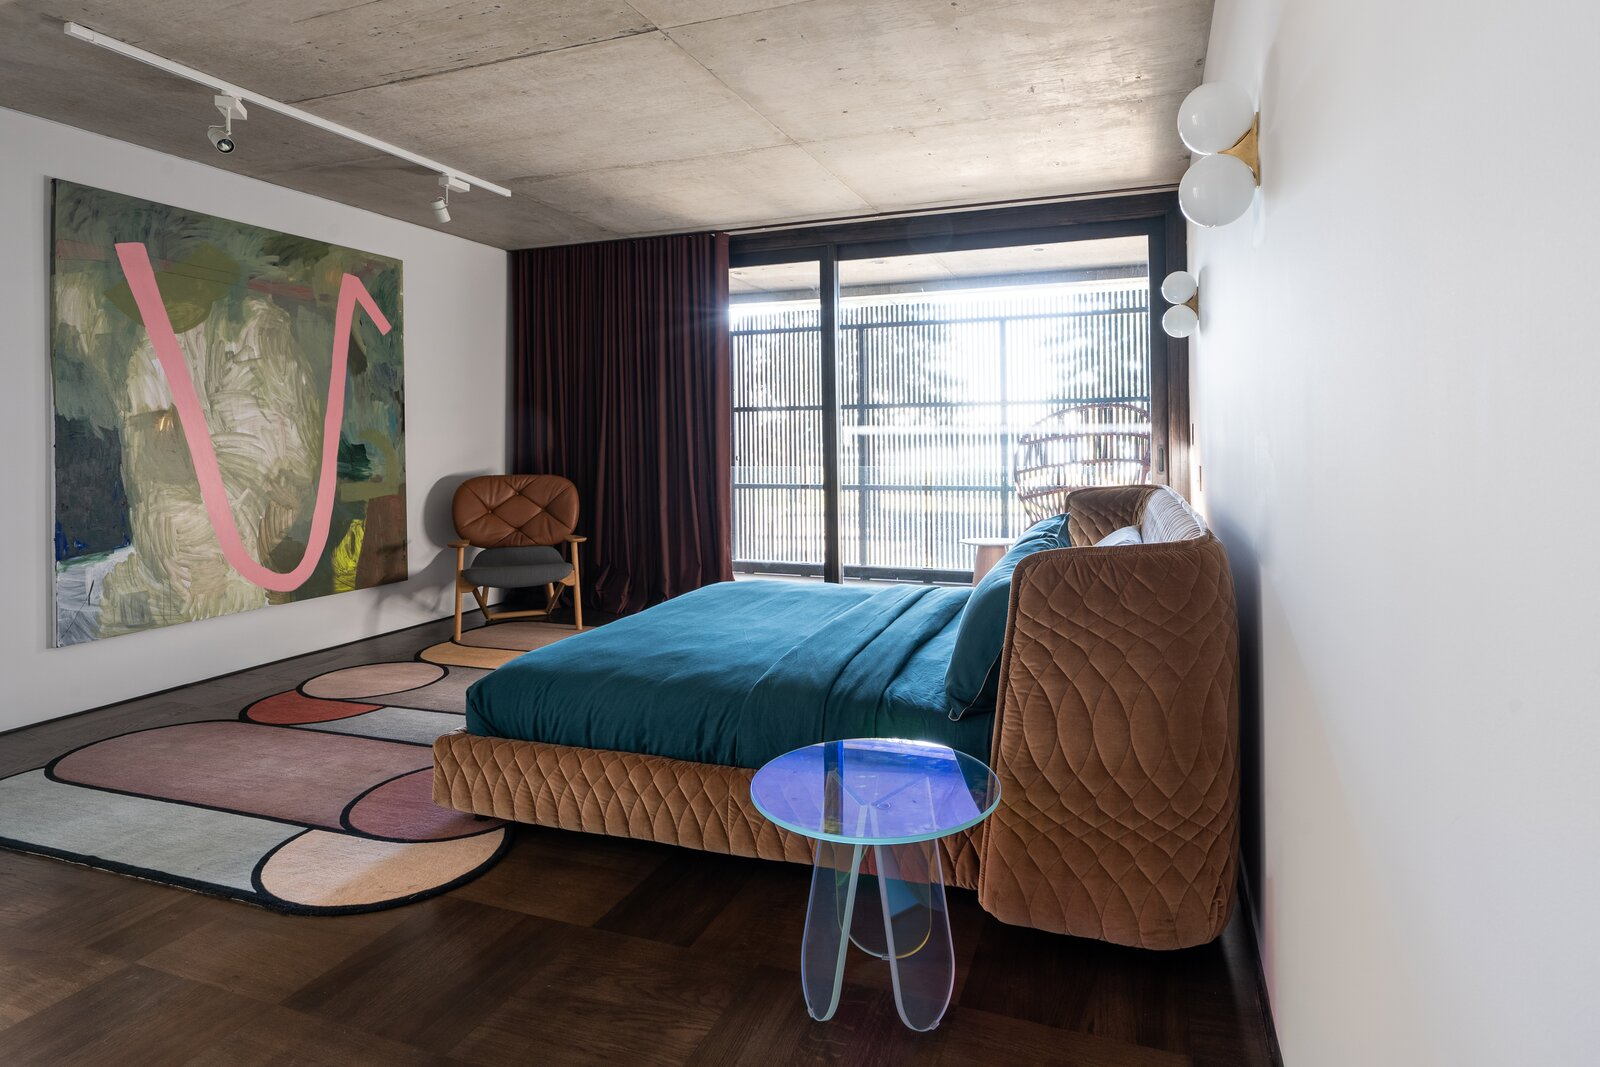 Bedroom, Track Lighting, Bed, Dark Hardwood Floor, Wall Lighting, Medium Hardwood Floor, and Rug Floor  Photo 12 of 23 in Mechanized Shutters Protect This Australian Home From Prying Eyes